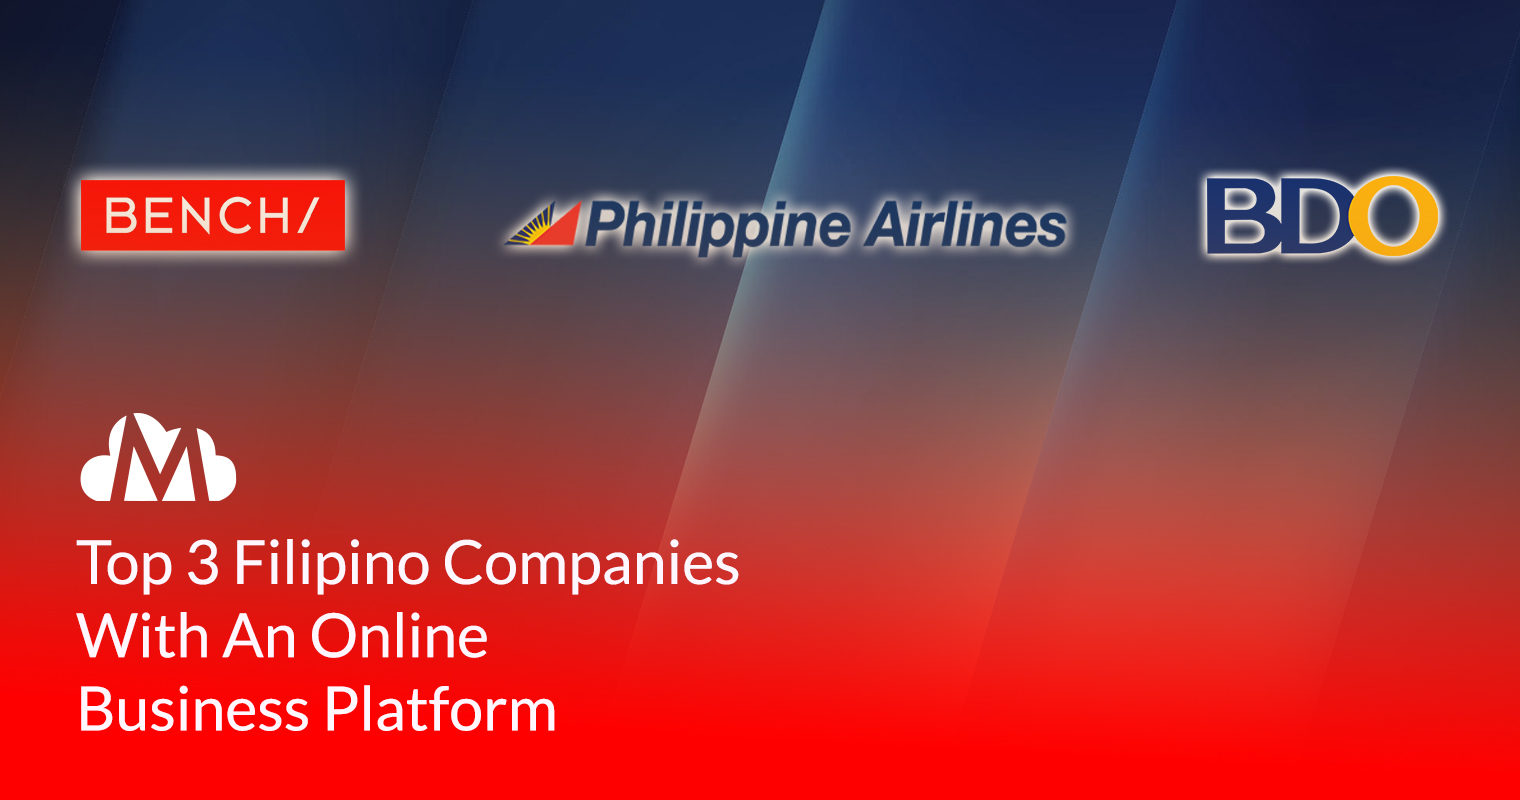 Top 3 Filipino Companies With An Online Business Platform